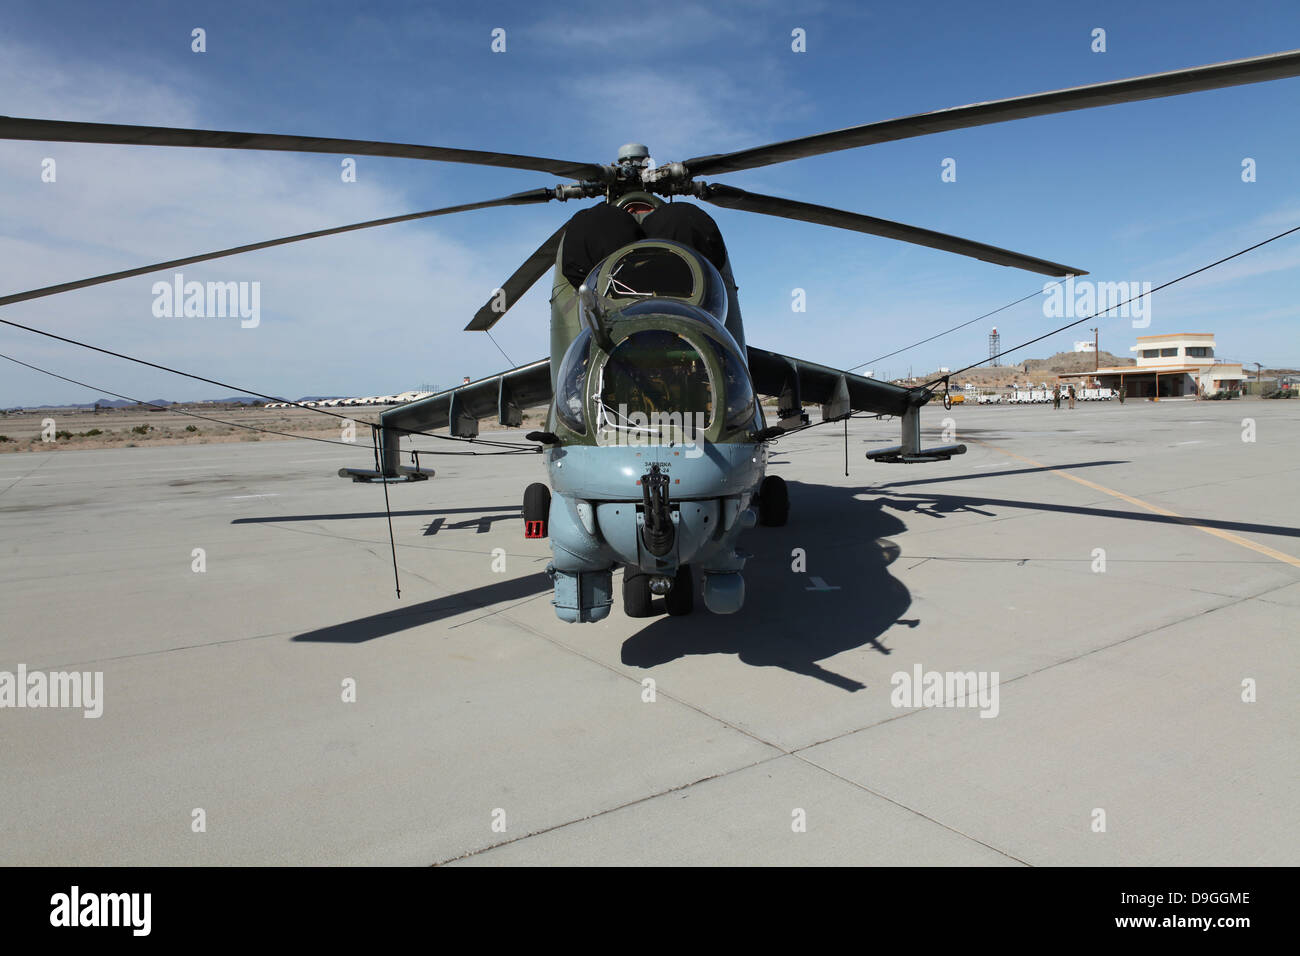 An Mi-24 Hind helicopter. - Stock Image